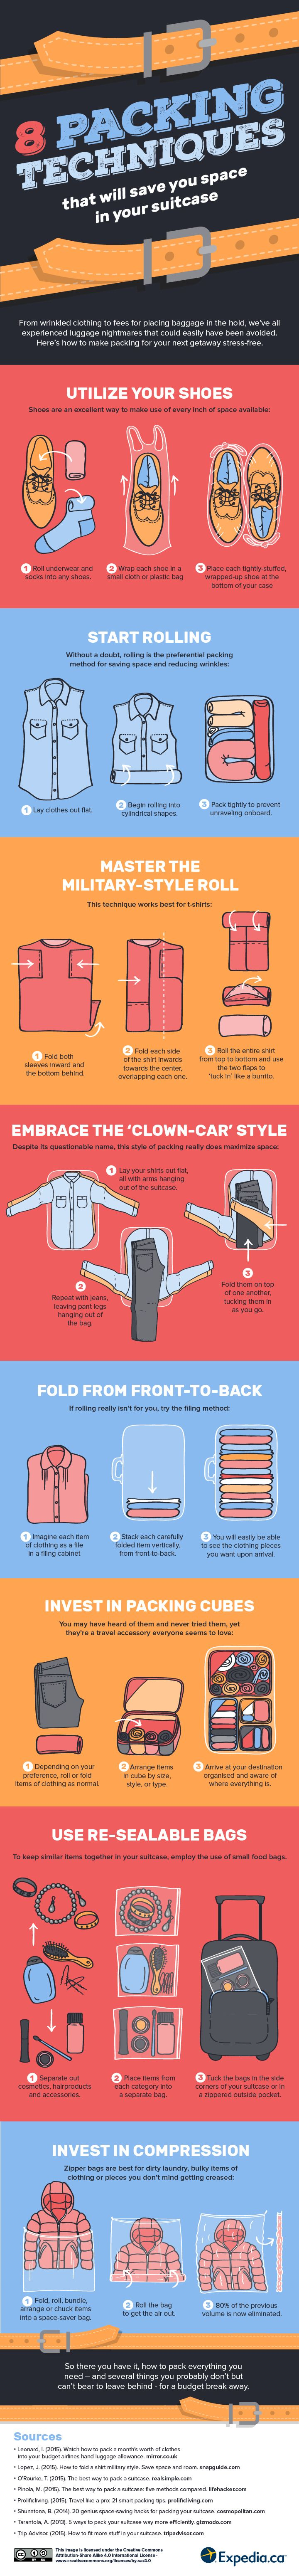 Here are some tips to get you ahead of the packing curve, even when you've been…